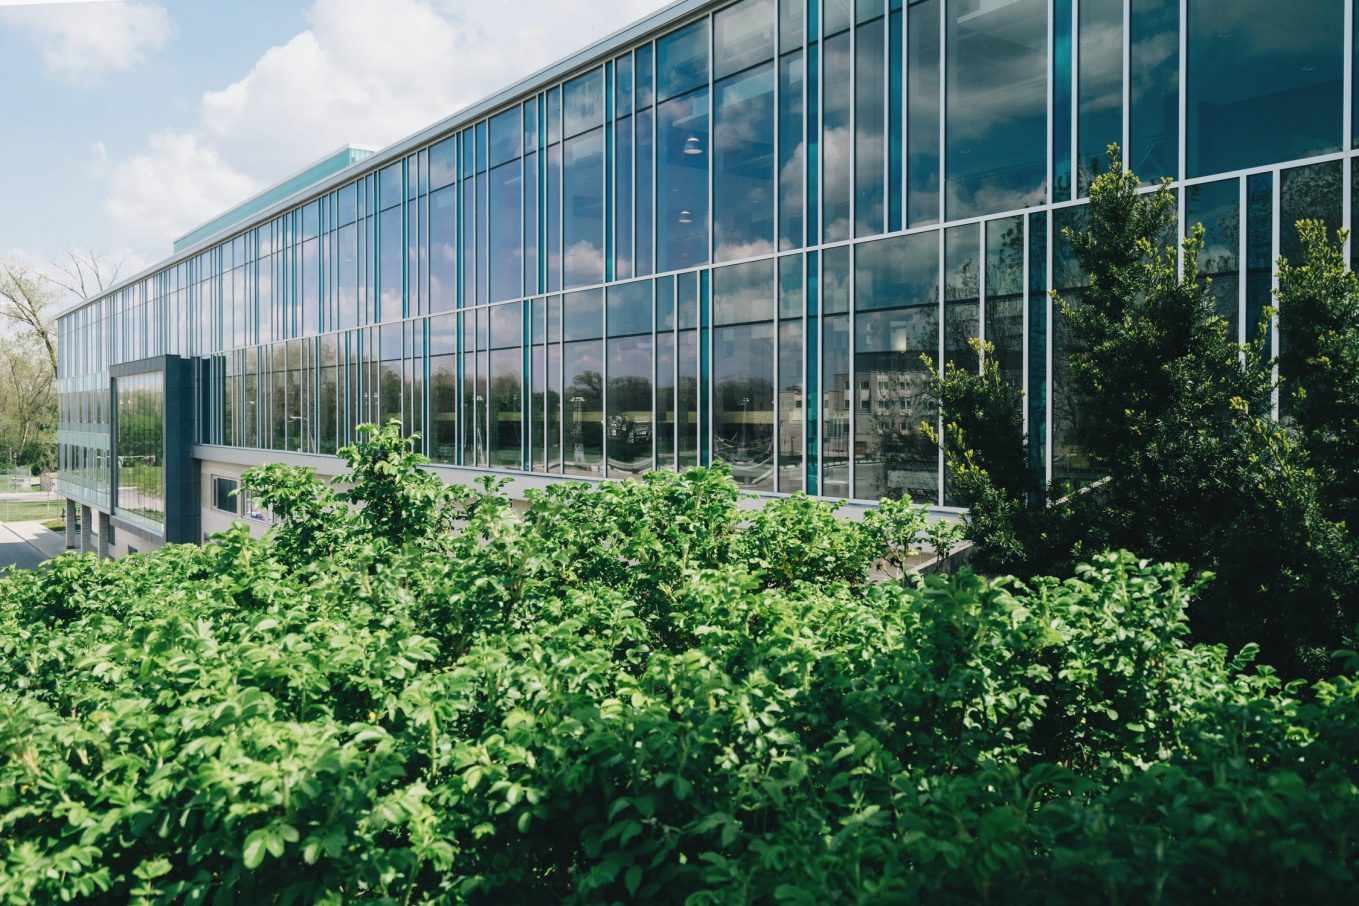 2021 Construction Trends Facilitated By Commercial Window Films - Commercial Window Film in Buffalo, New York